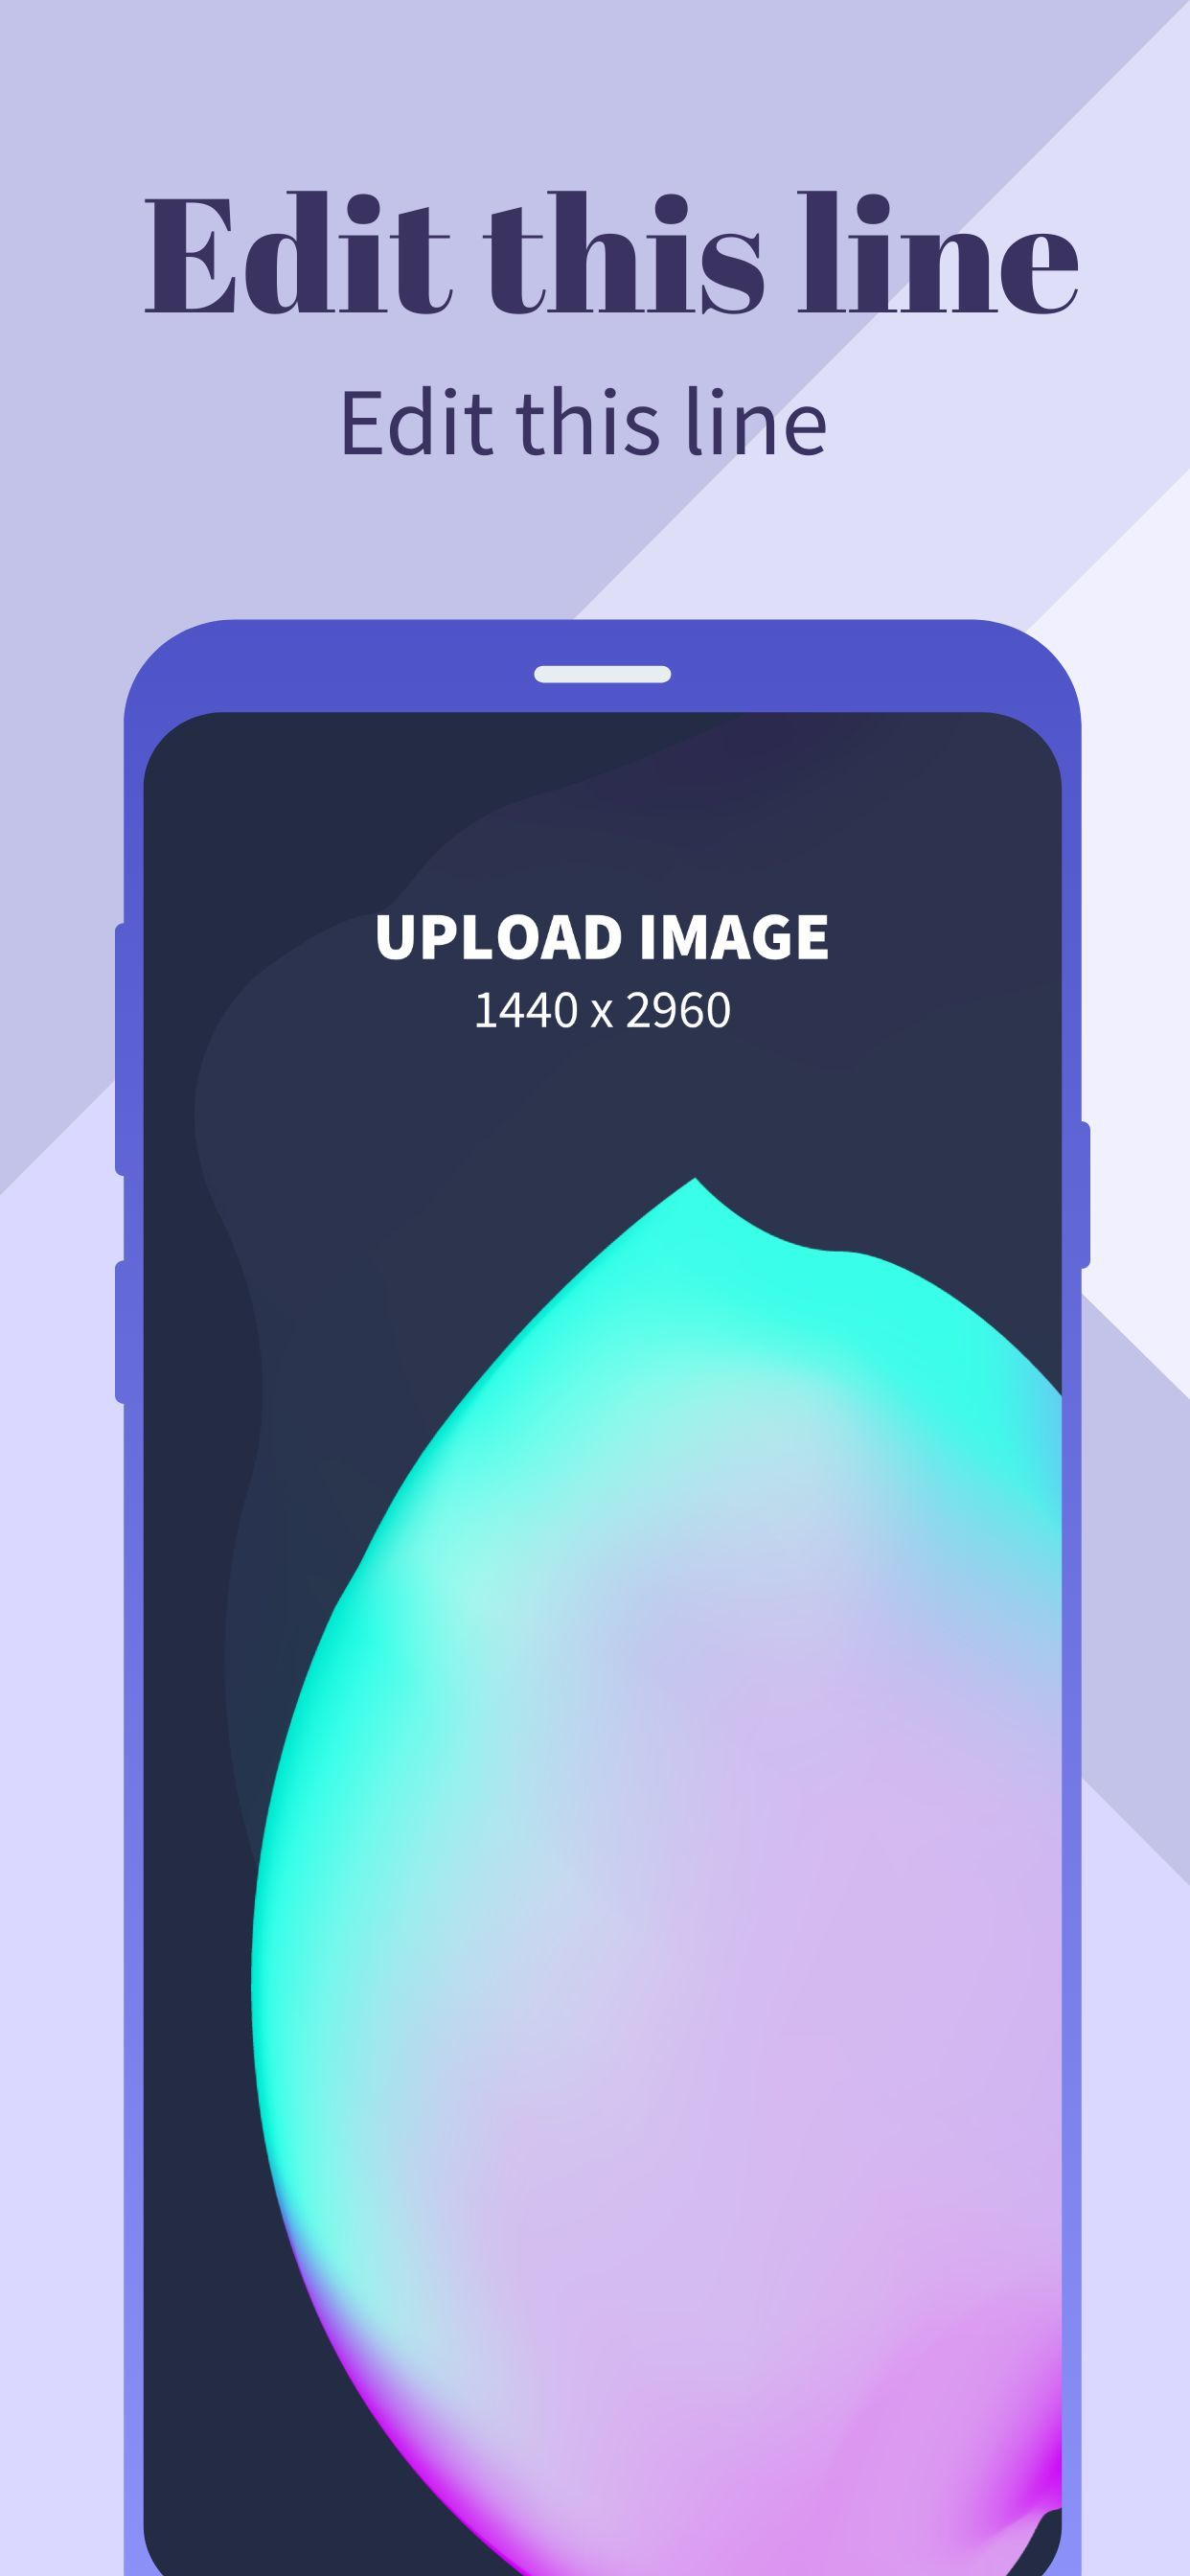 Samsung S9 Screenshot 5 template. Quickly edit text, colors, images, and more for free.